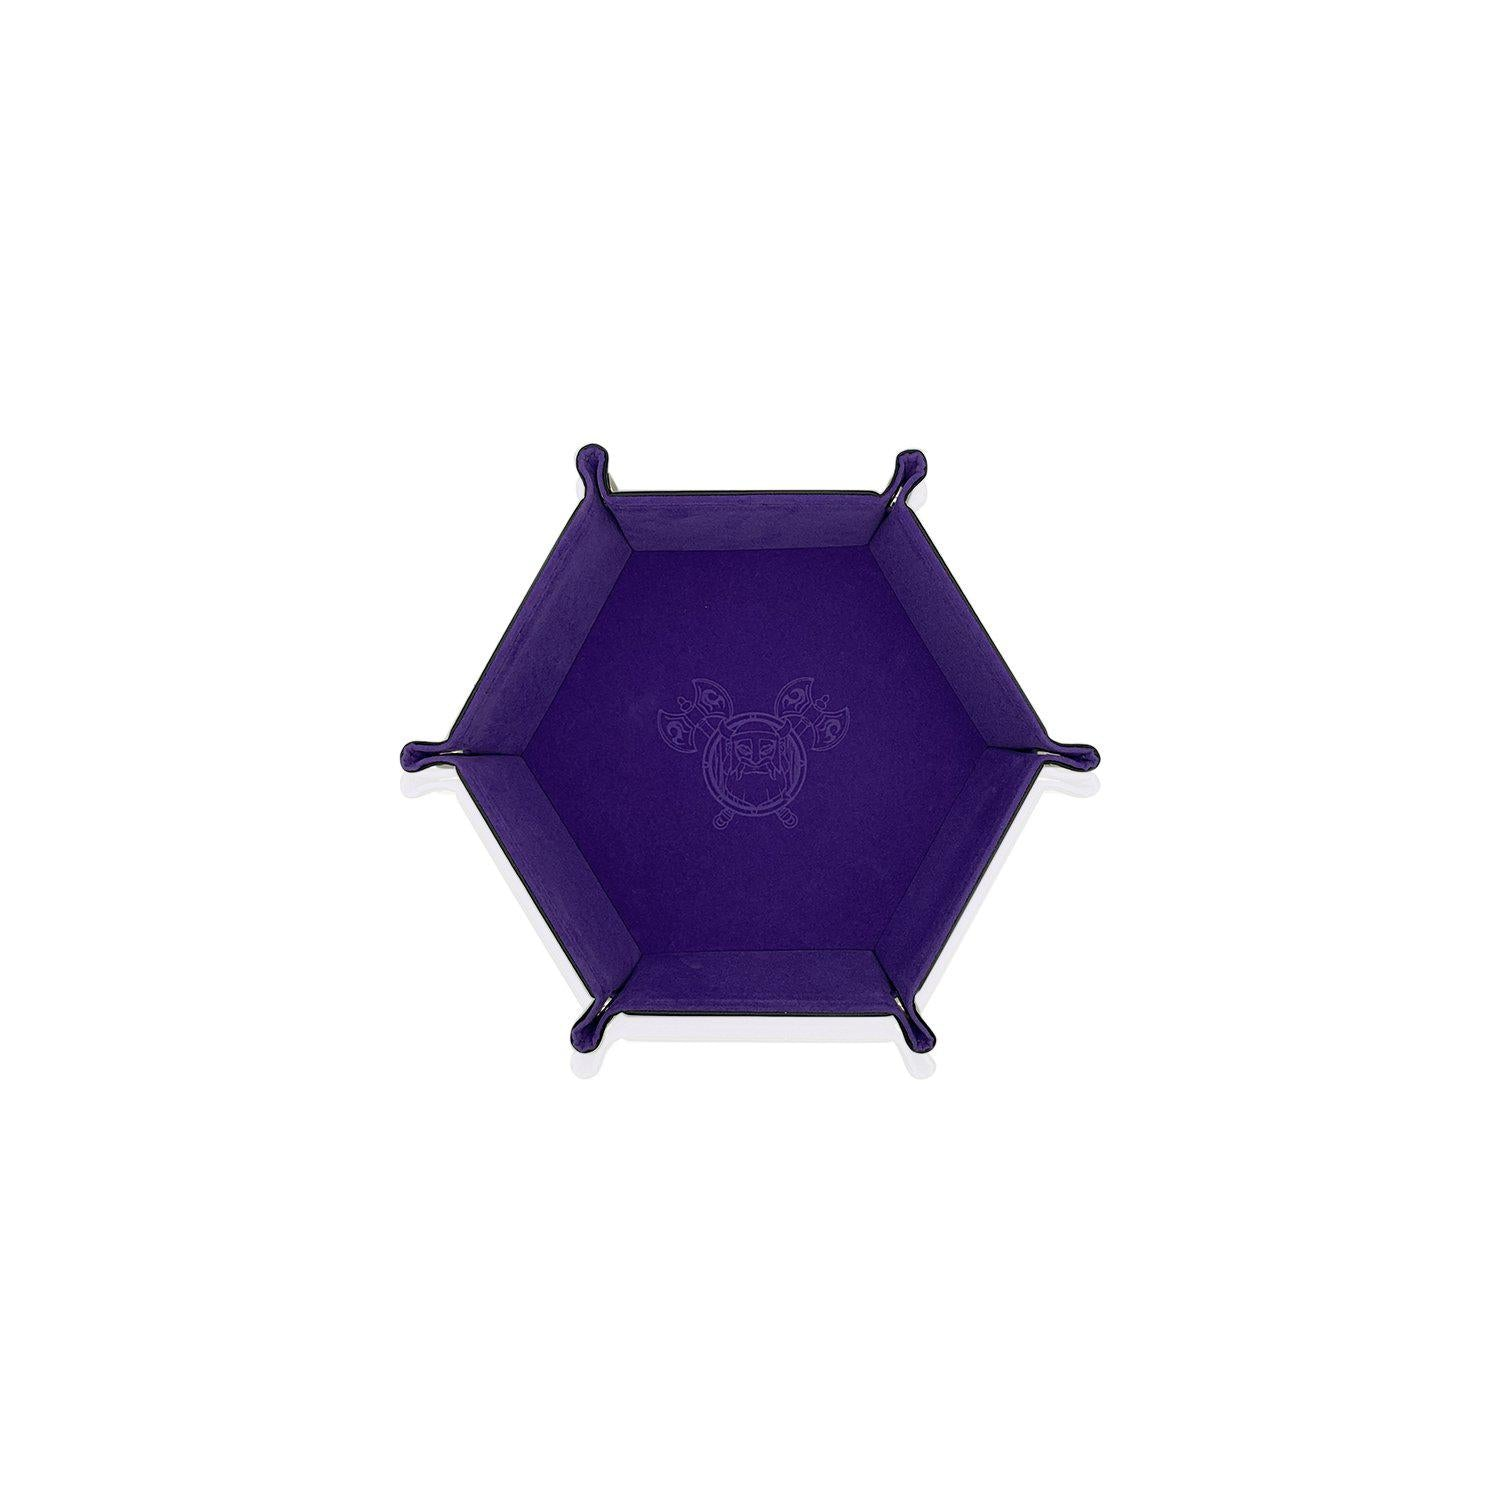 Tray of Folding - Purple